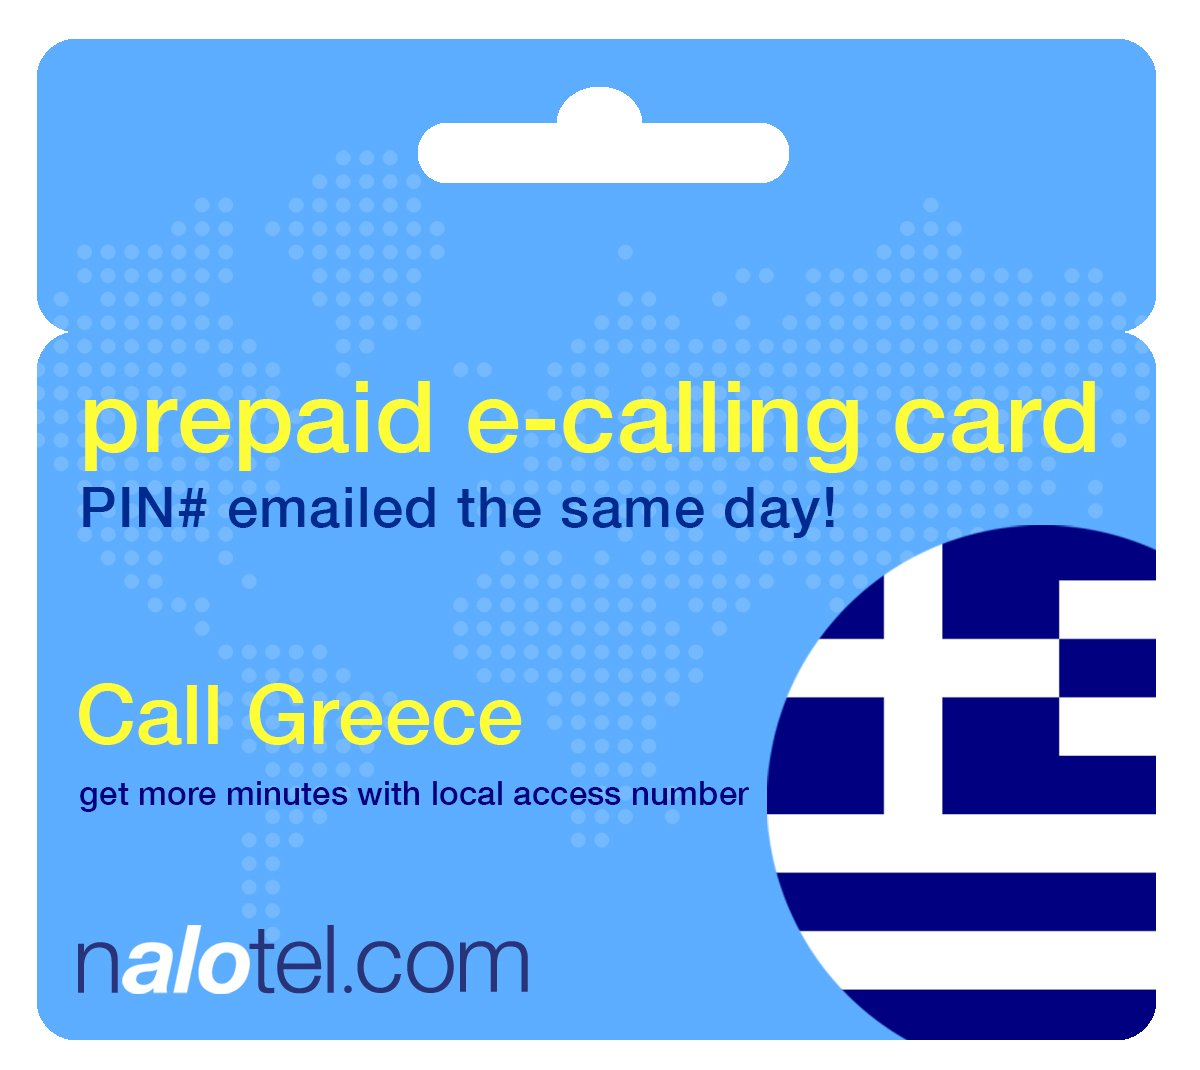 Prepaid Phone Card - Cheap International E-Calling Card $20 for Greece with same day emailed PIN, no postage necessary